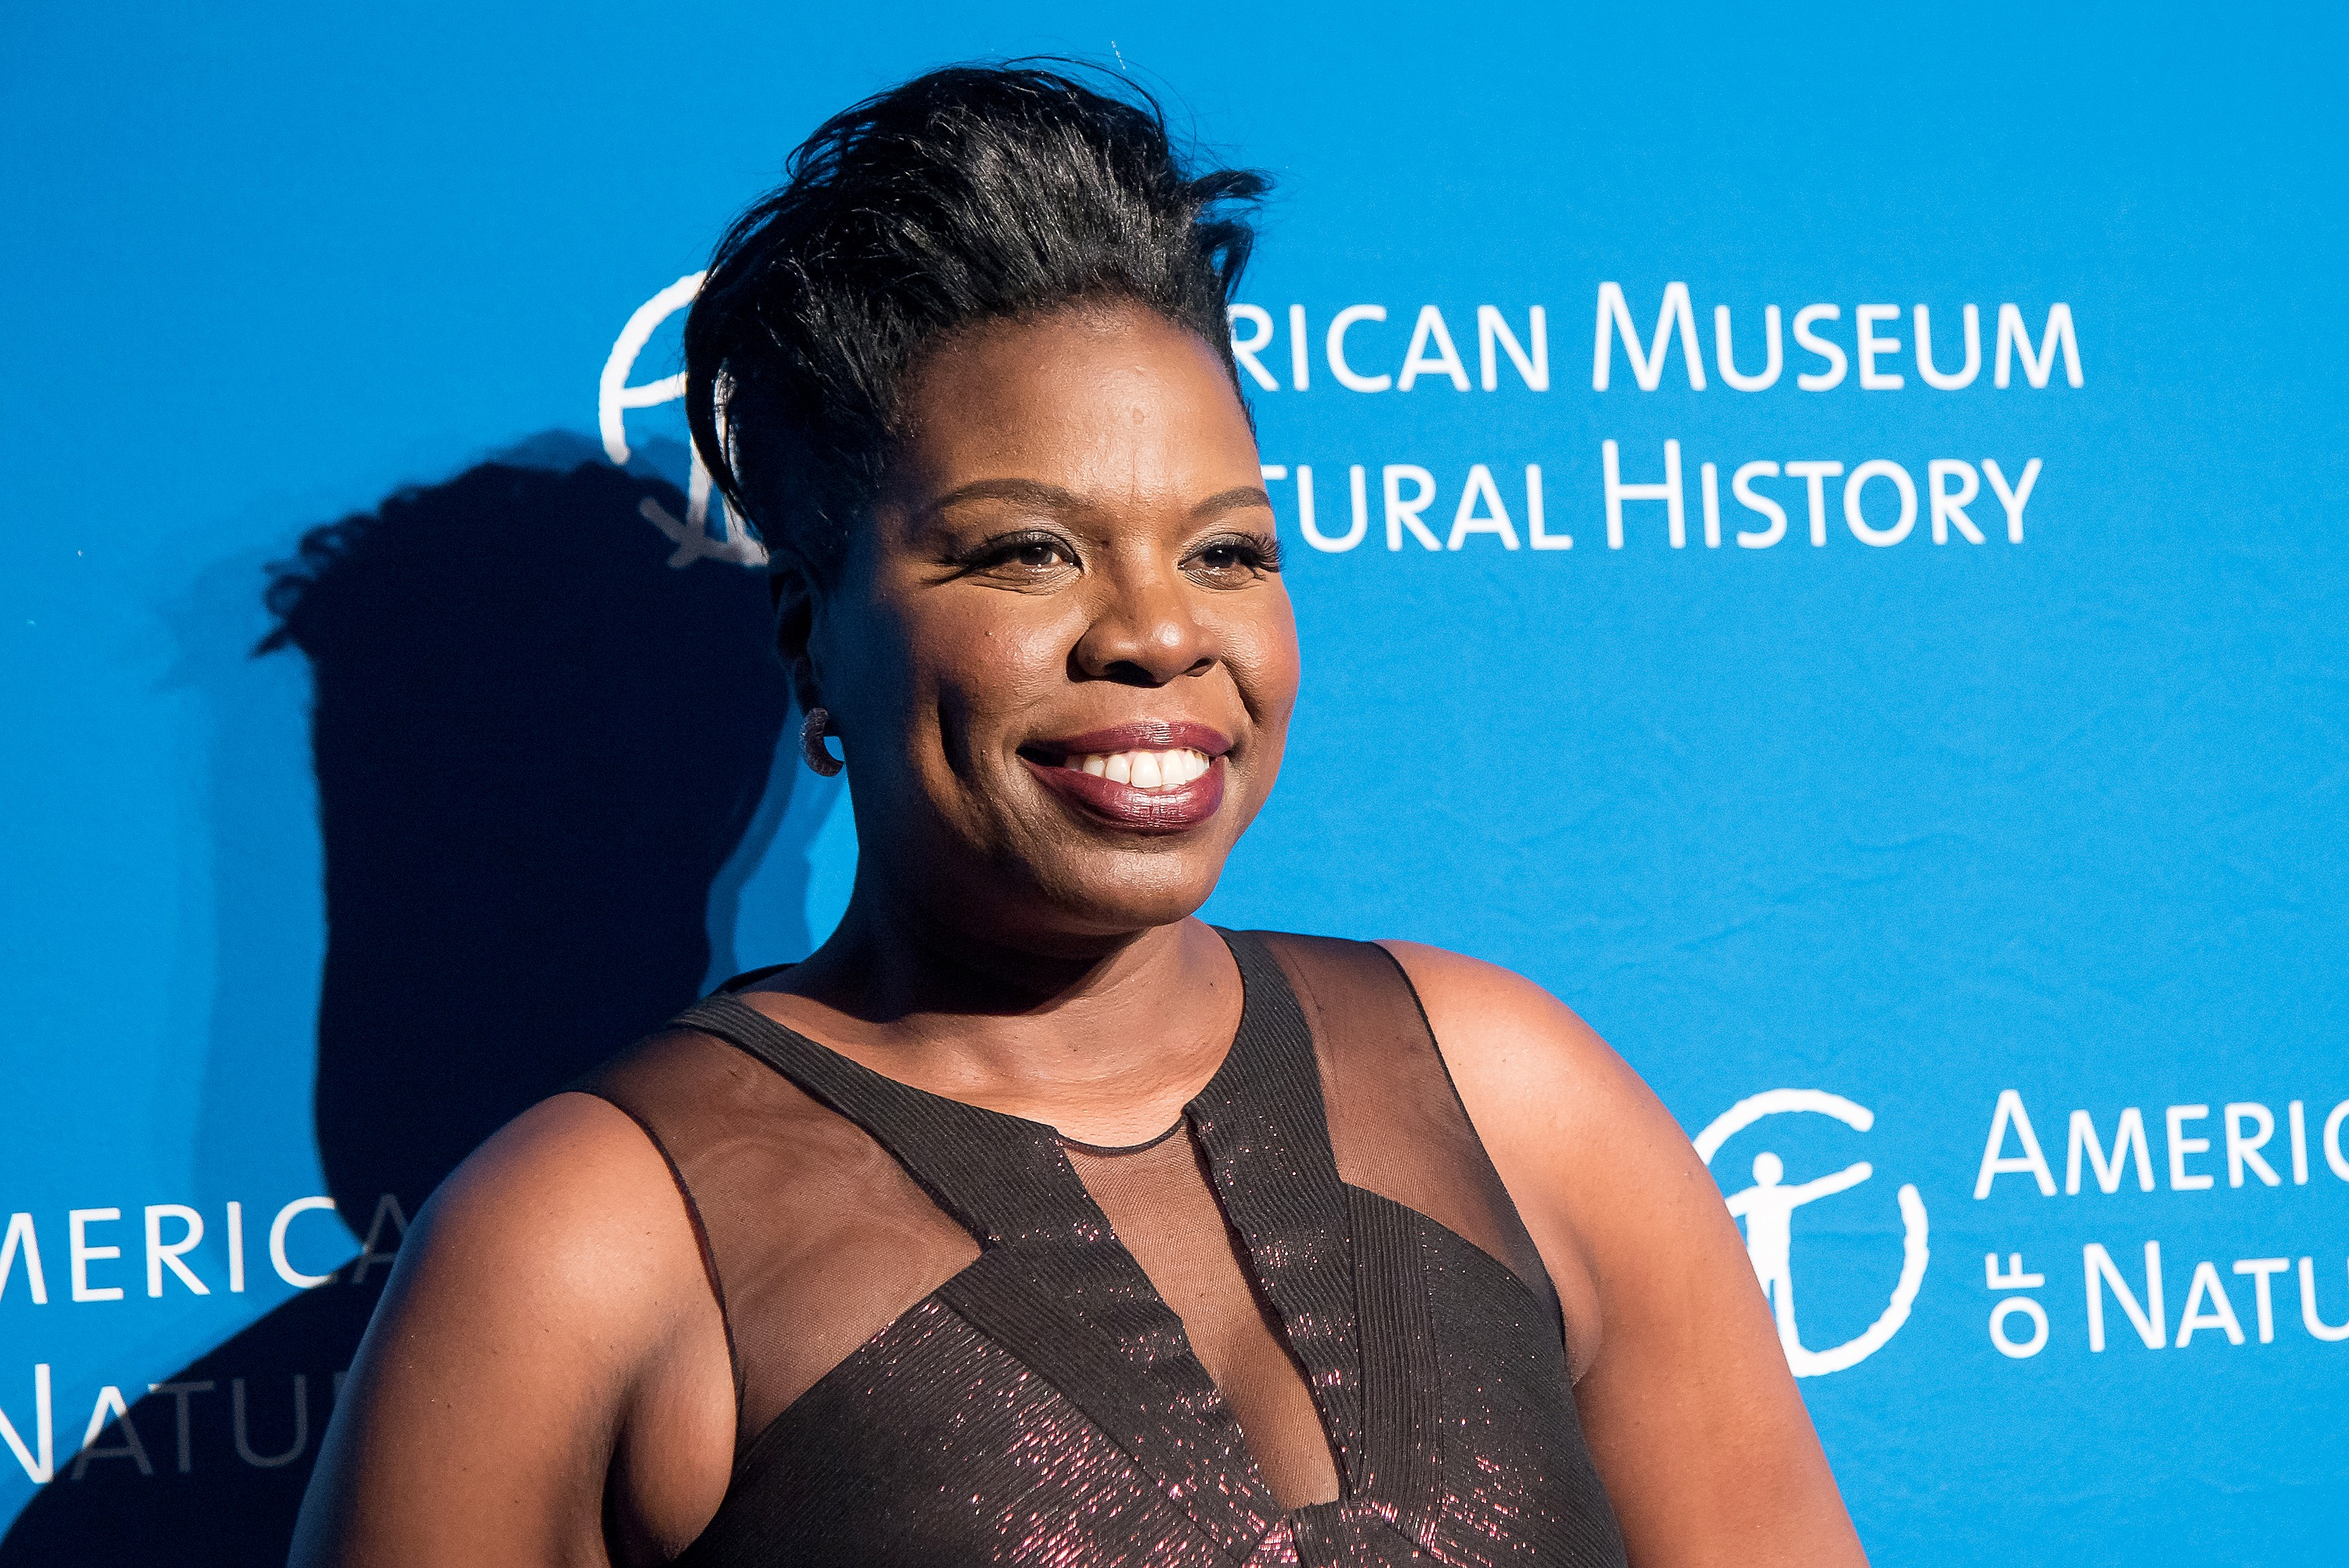 NEW YORK, NY - NOVEMBER 17:  Leslie Jones attends the 2016 American Museum Of Natural History Museum Gala at American Museum of Natural History on November 17, 2016 in New York City.  (Photo by Mike Pont/WireImage)